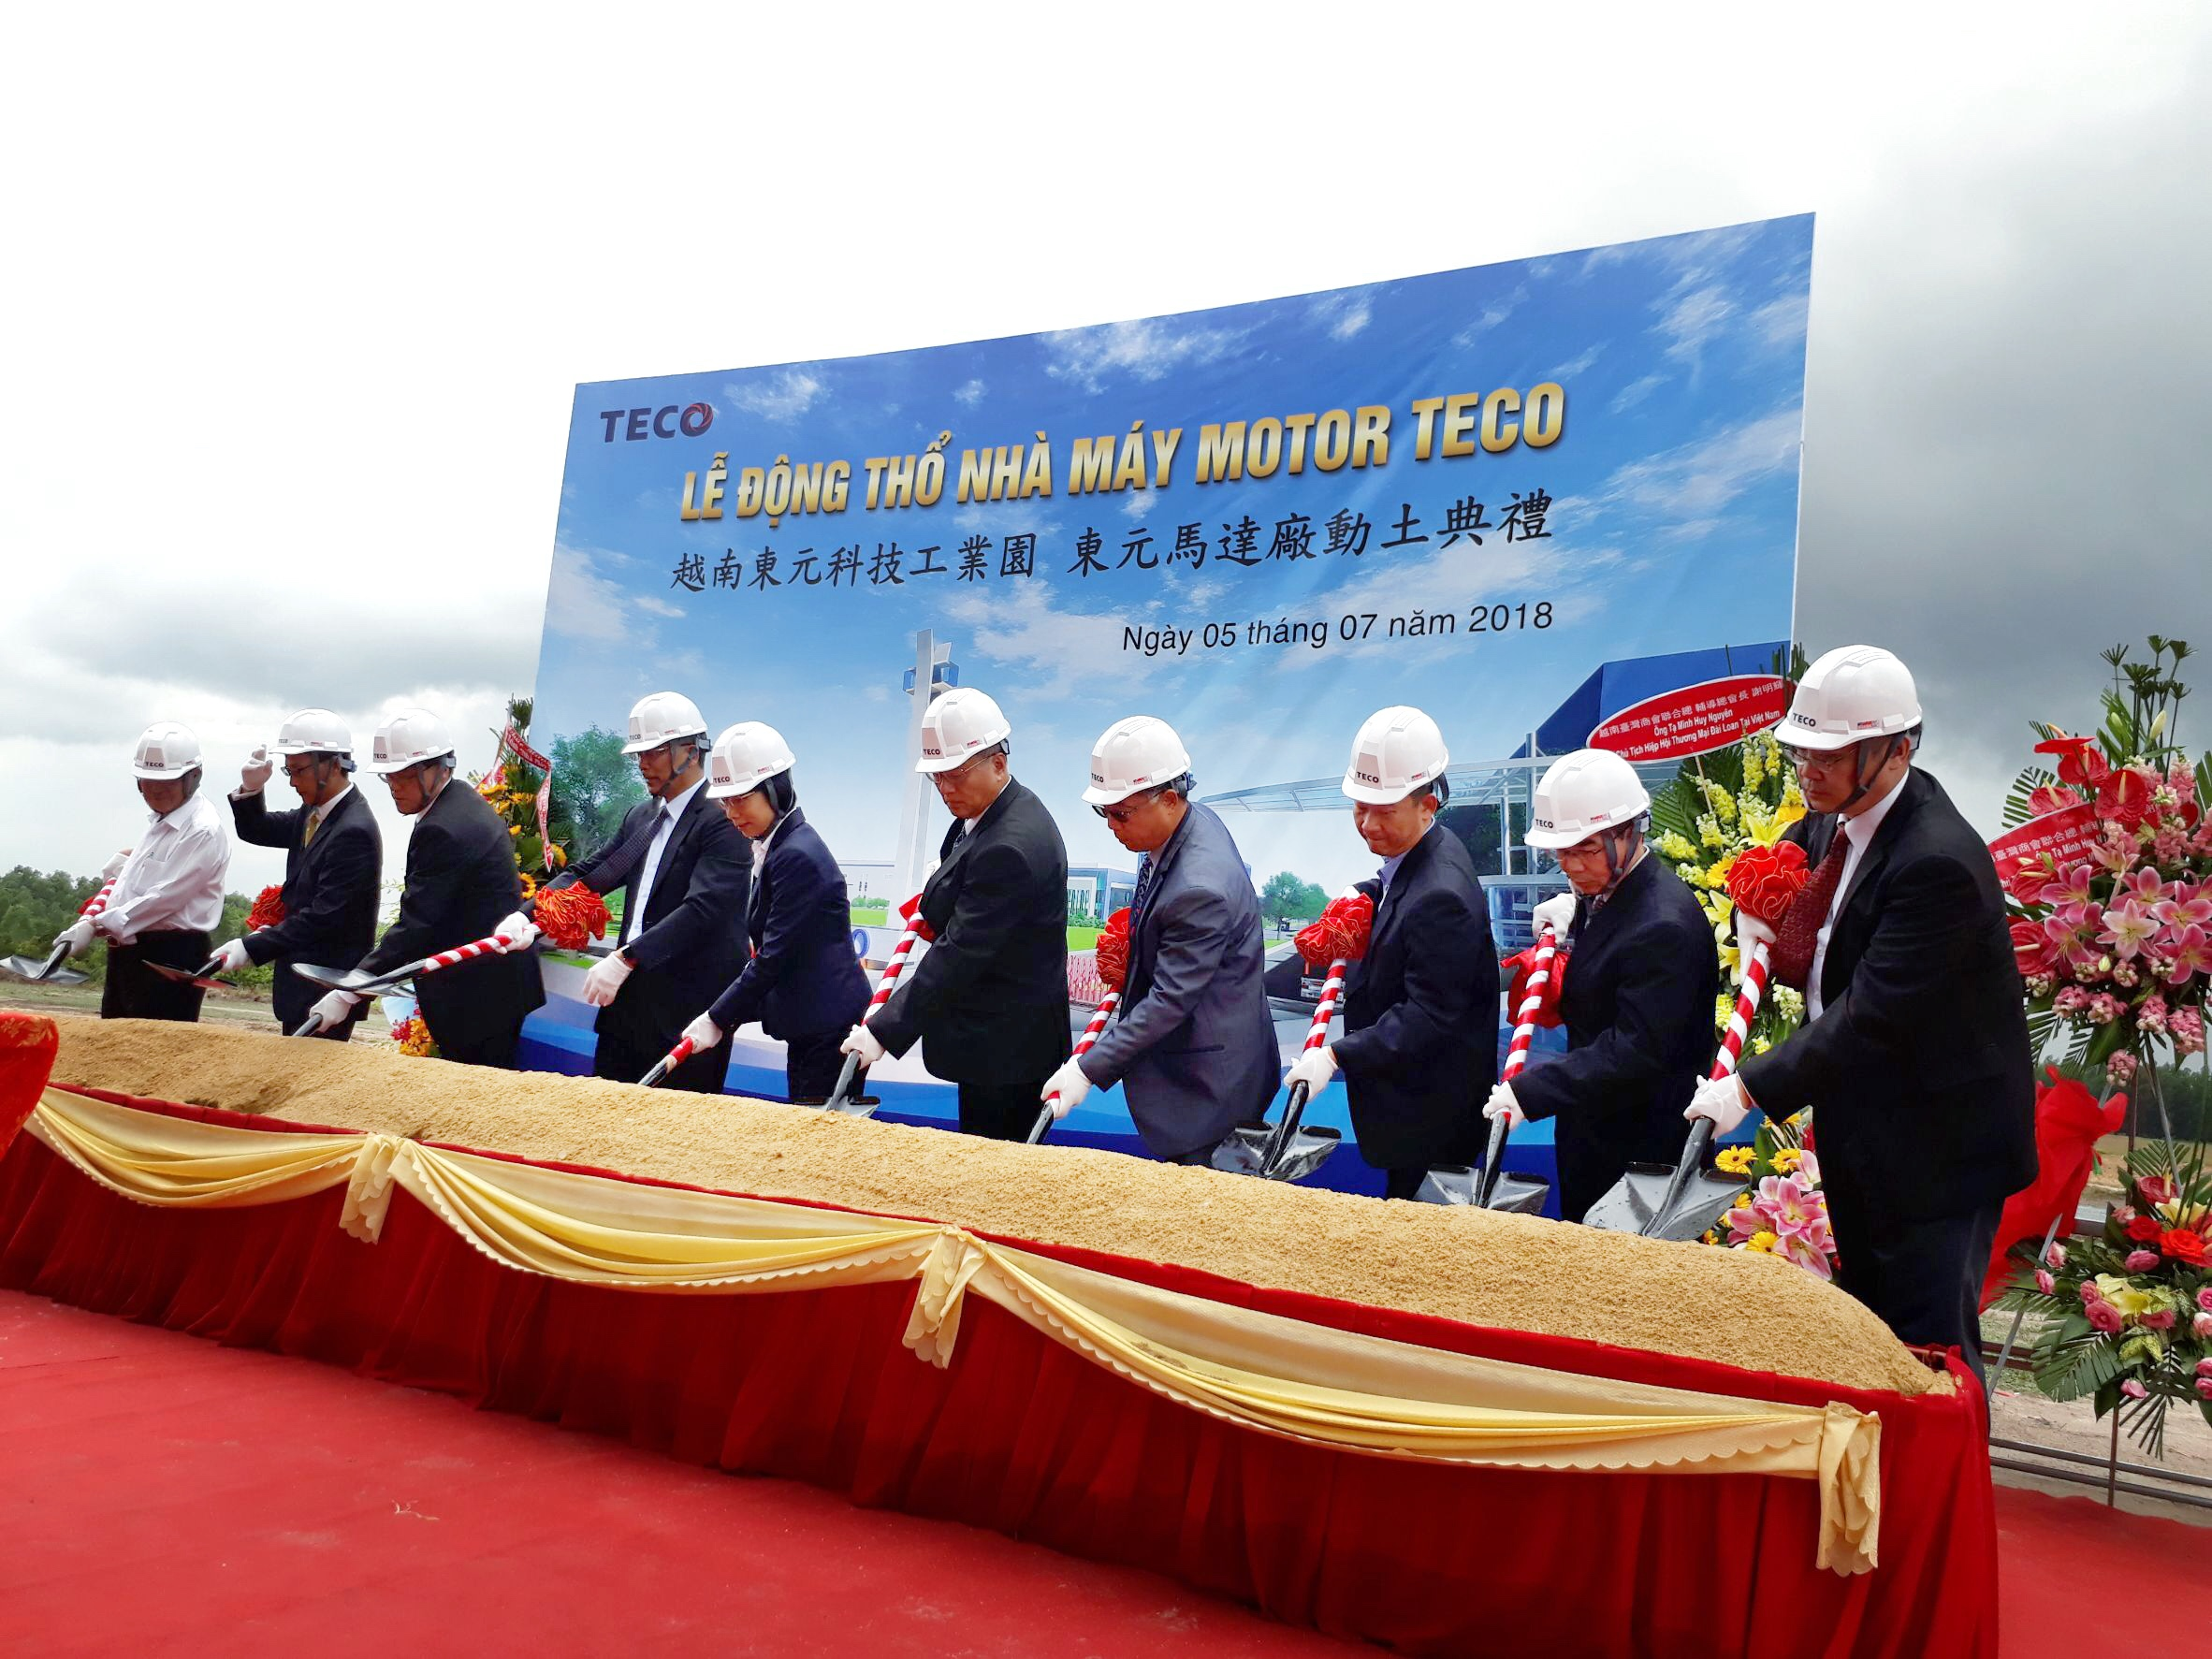 TECO Vietnam Motor Plant Breaks Ground